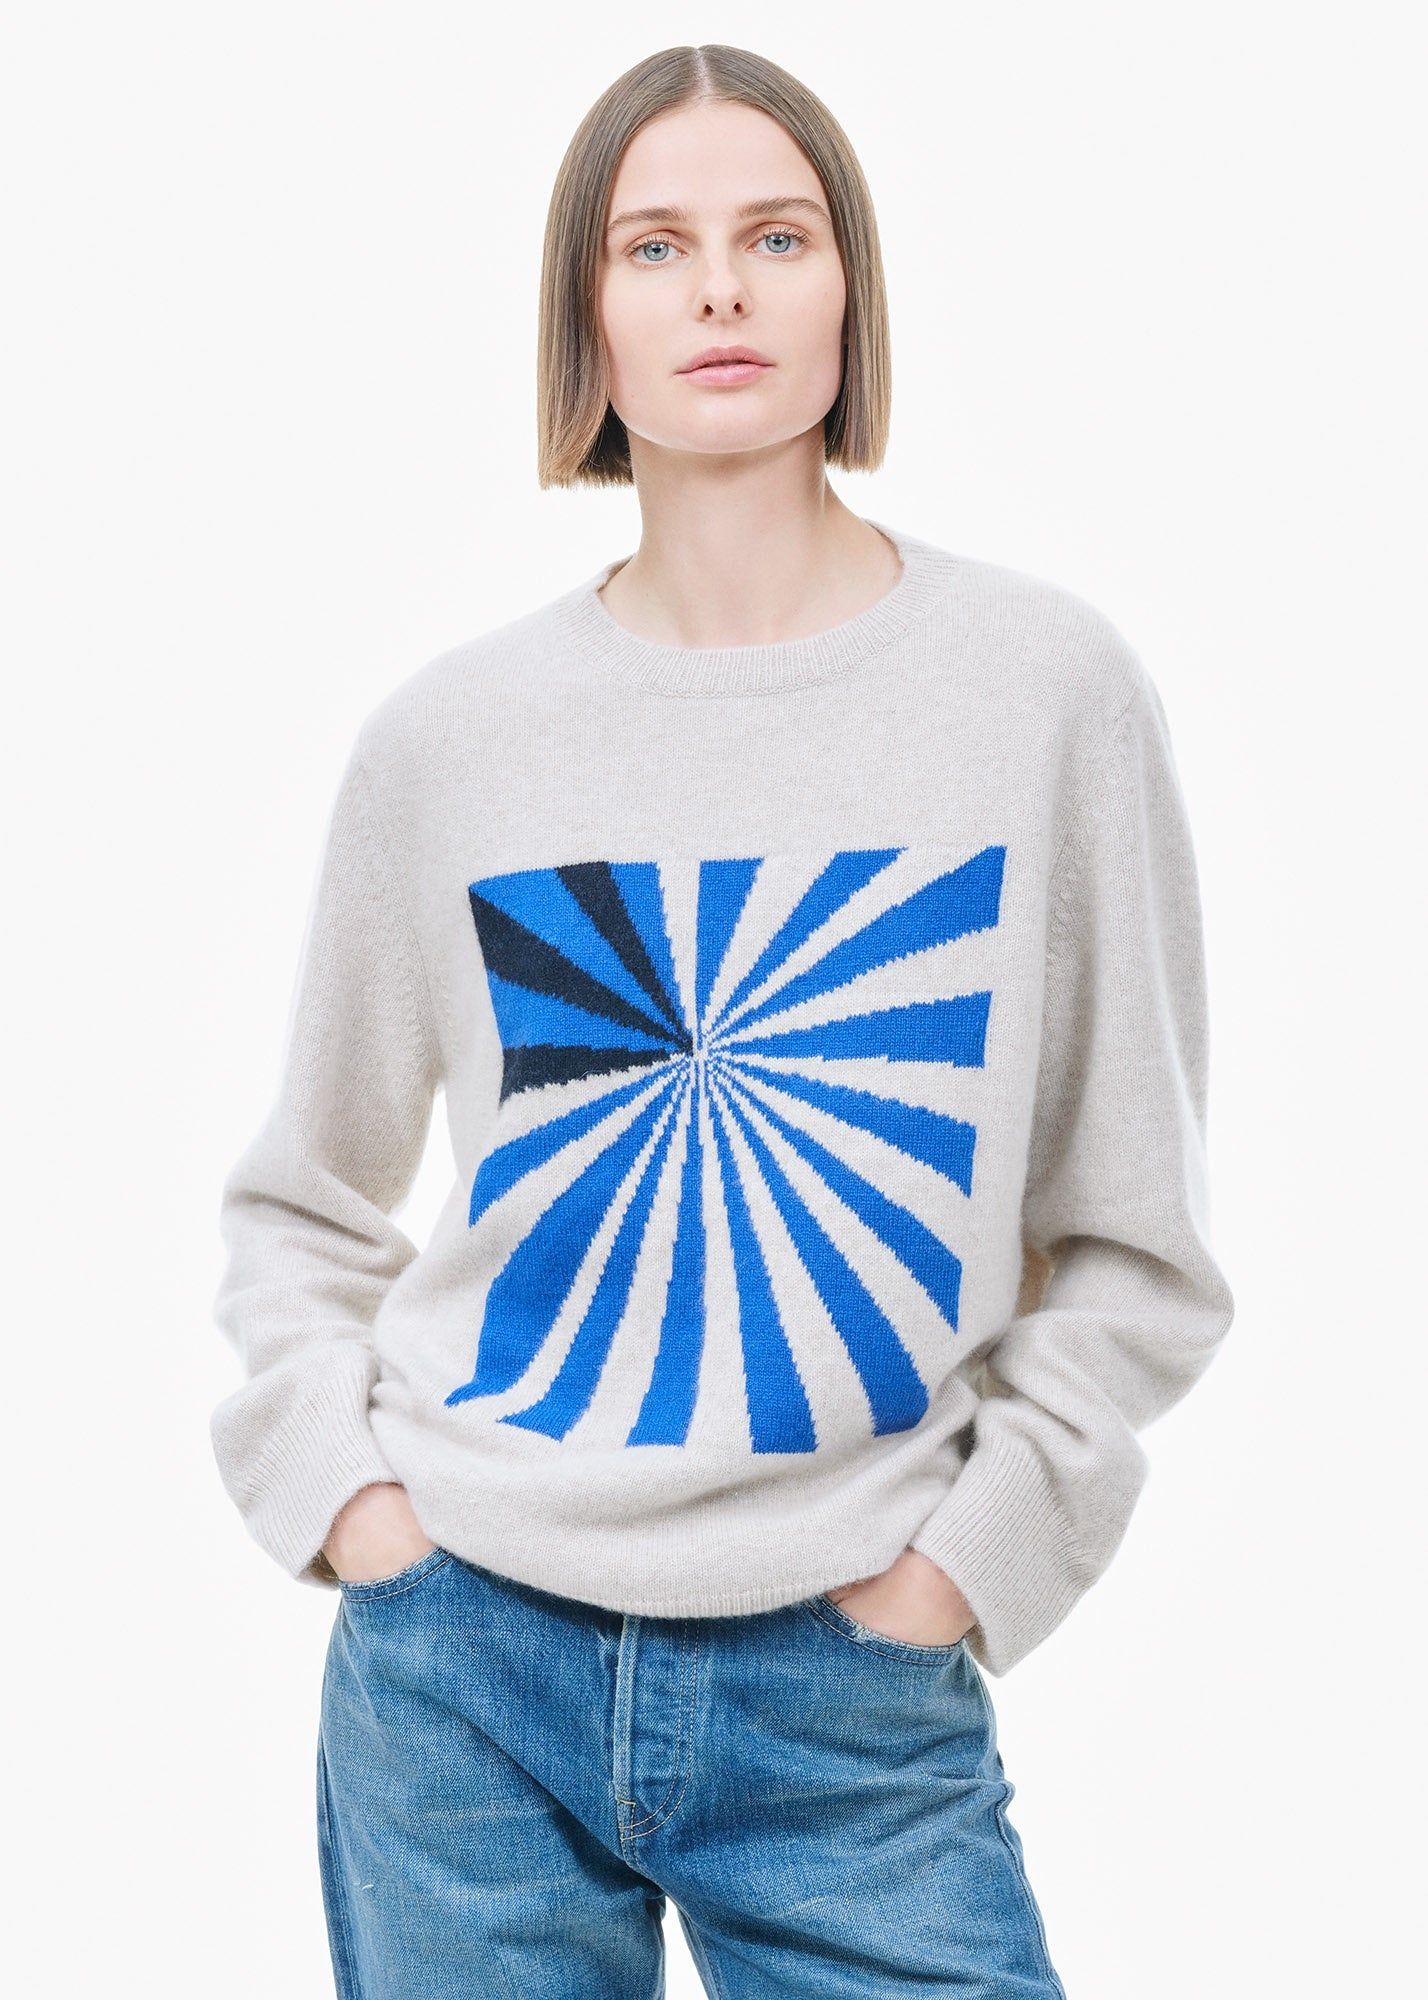 Odd Space Racing Crew White/ Blue